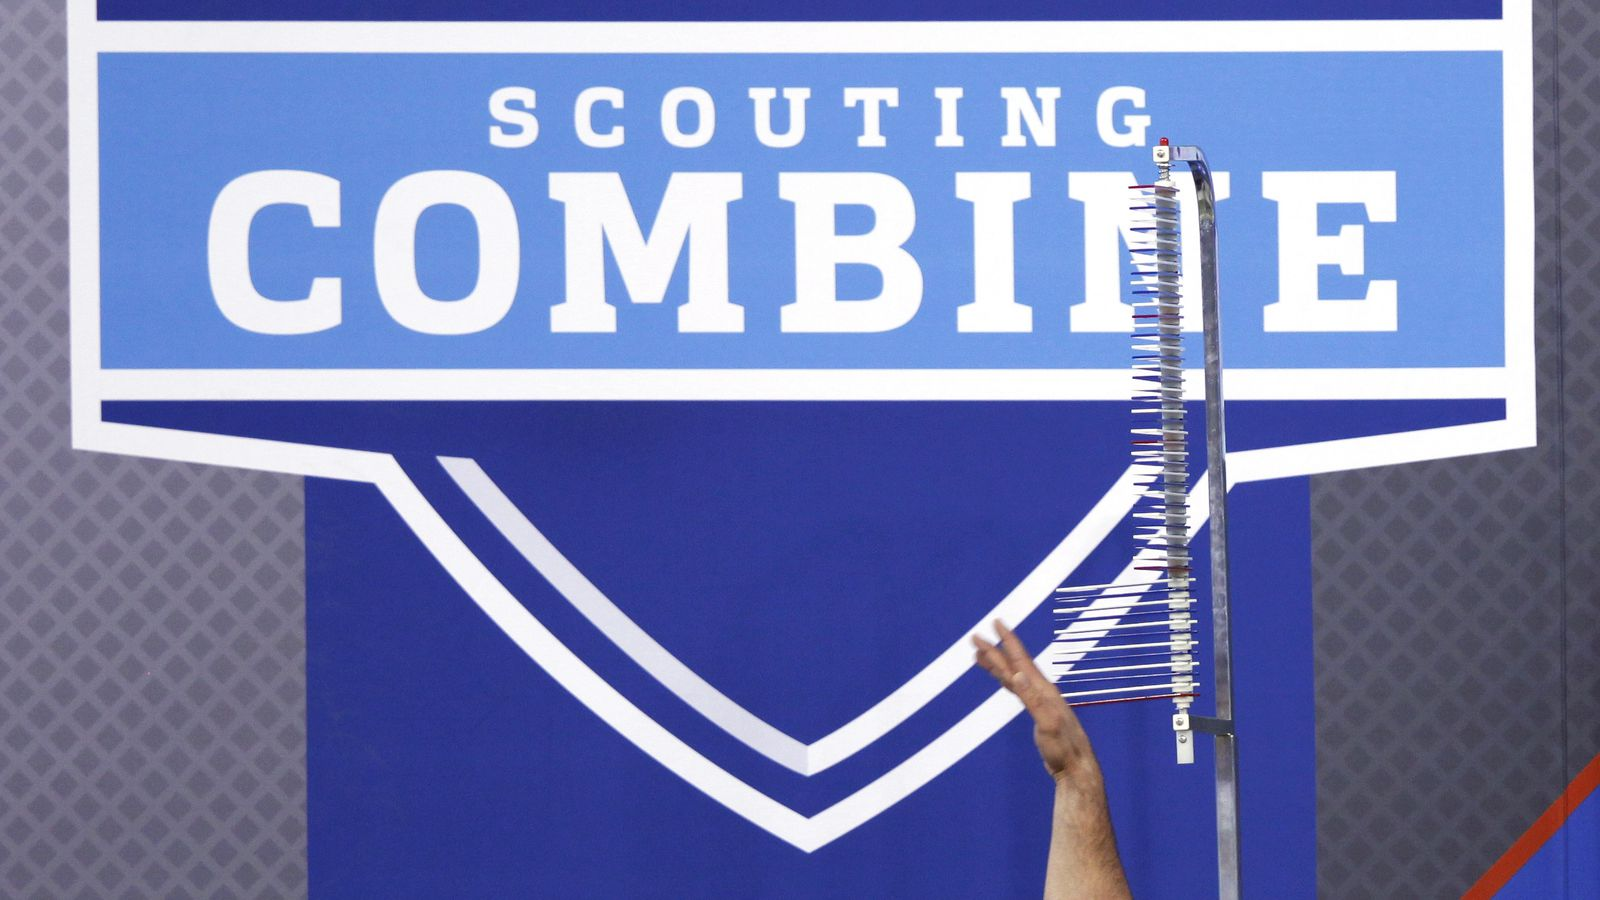 2015 NFL Scouting Combine Dates and Player Invite List